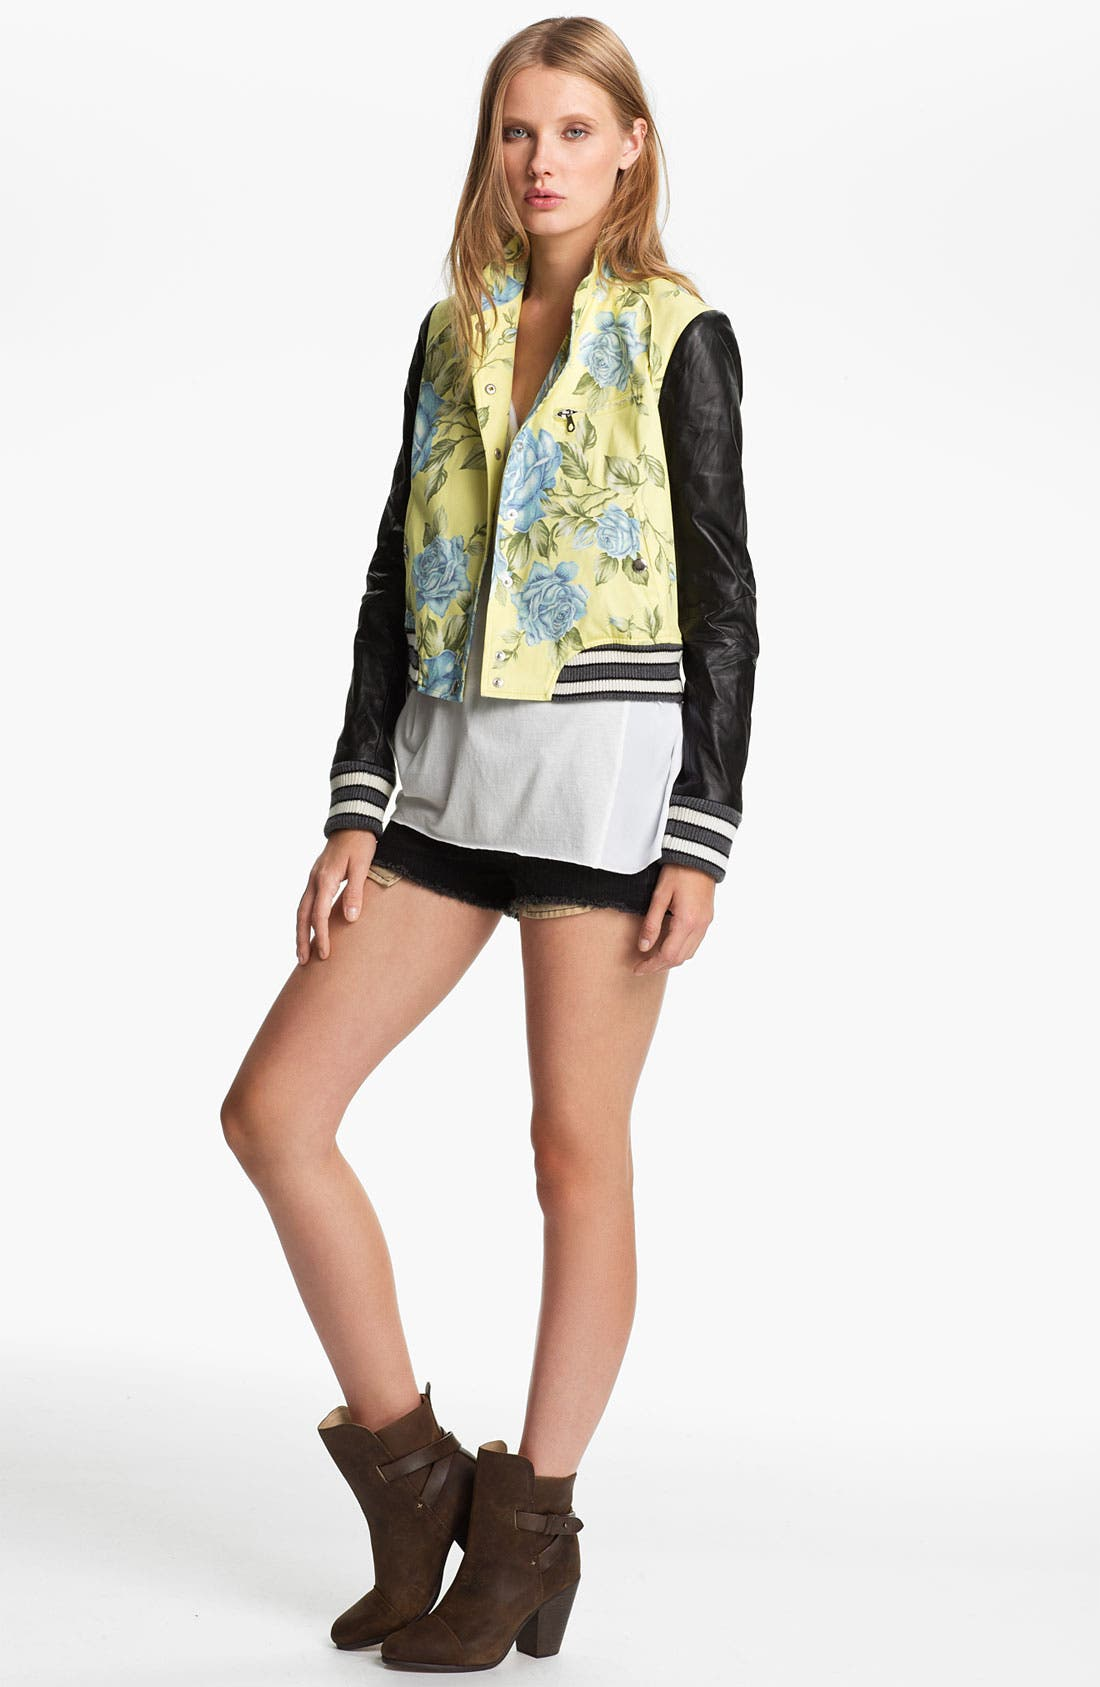 Main Image - rag & bone 'Cambridge' Floral Print Jacket